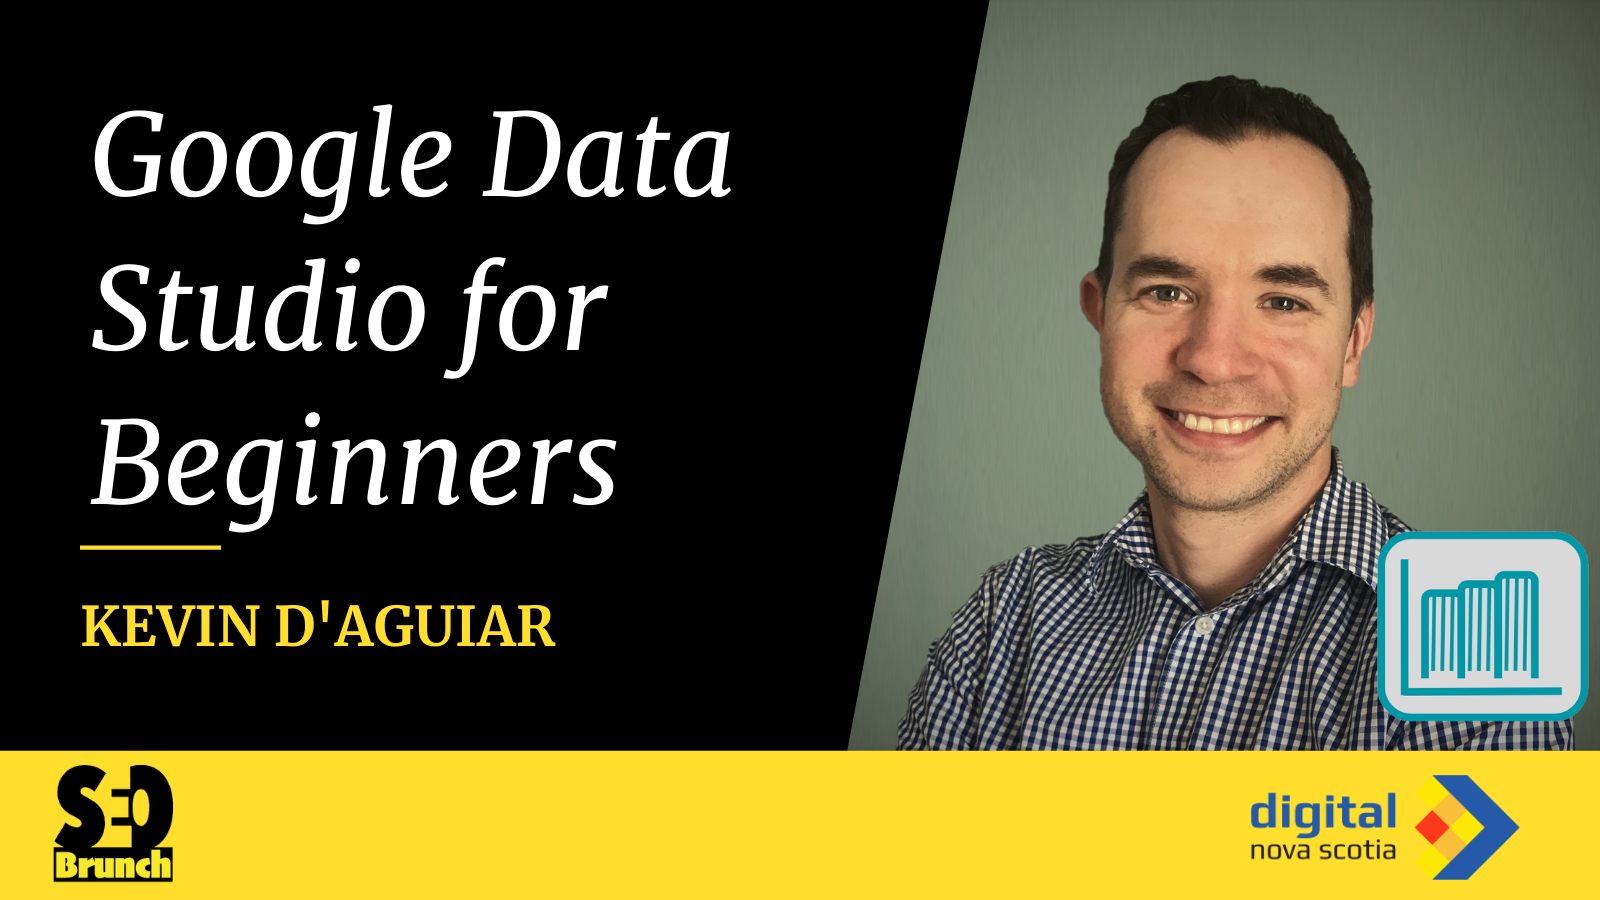 Google data studio for beginners with Kevin D'aguiar